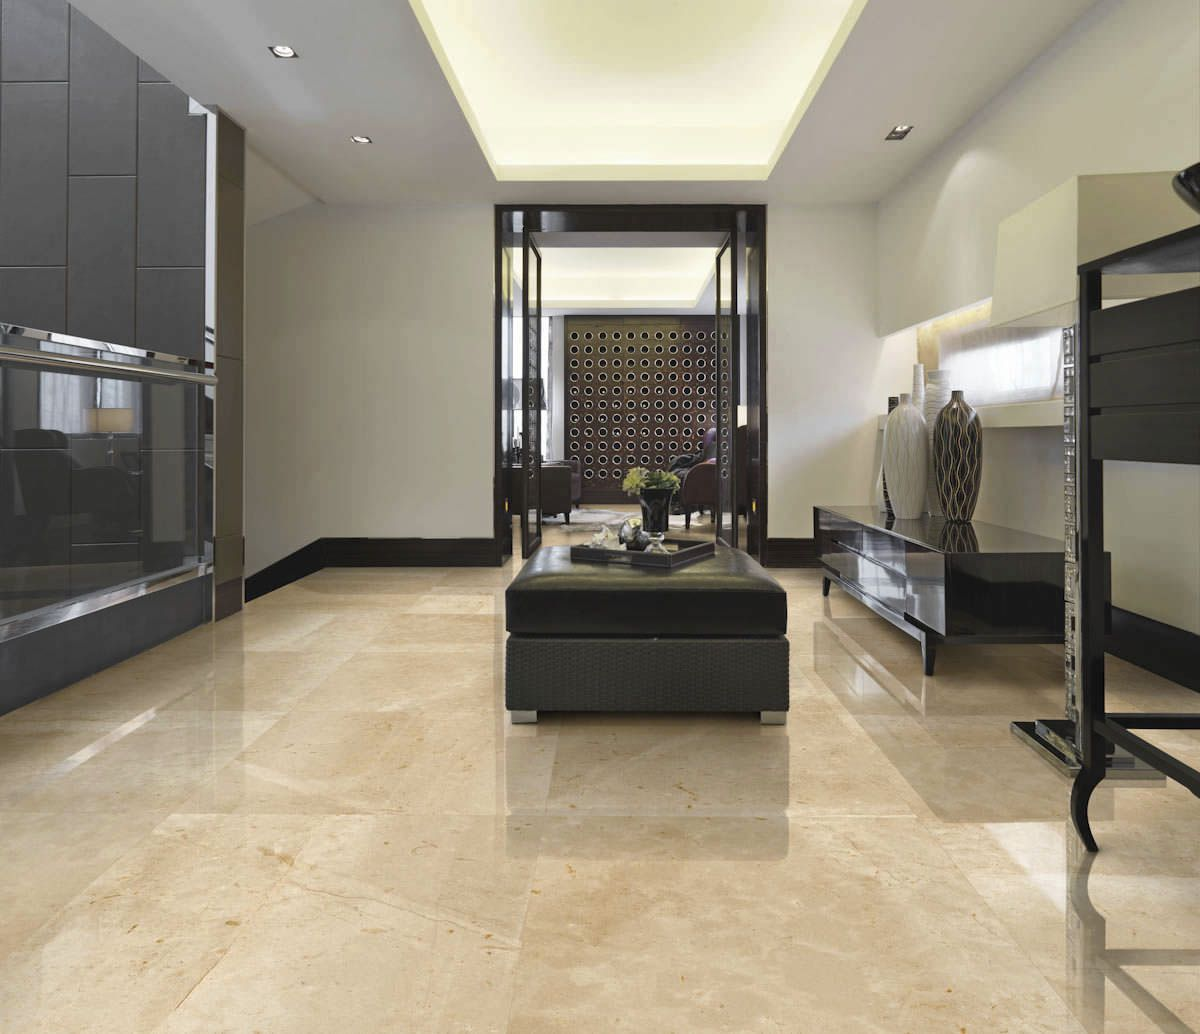 Floor tile porcelain stoneware high gloss marble look pearl floor tile porcelain stoneware high gloss marble look pearl hettangian peronda dailygadgetfo Image collections